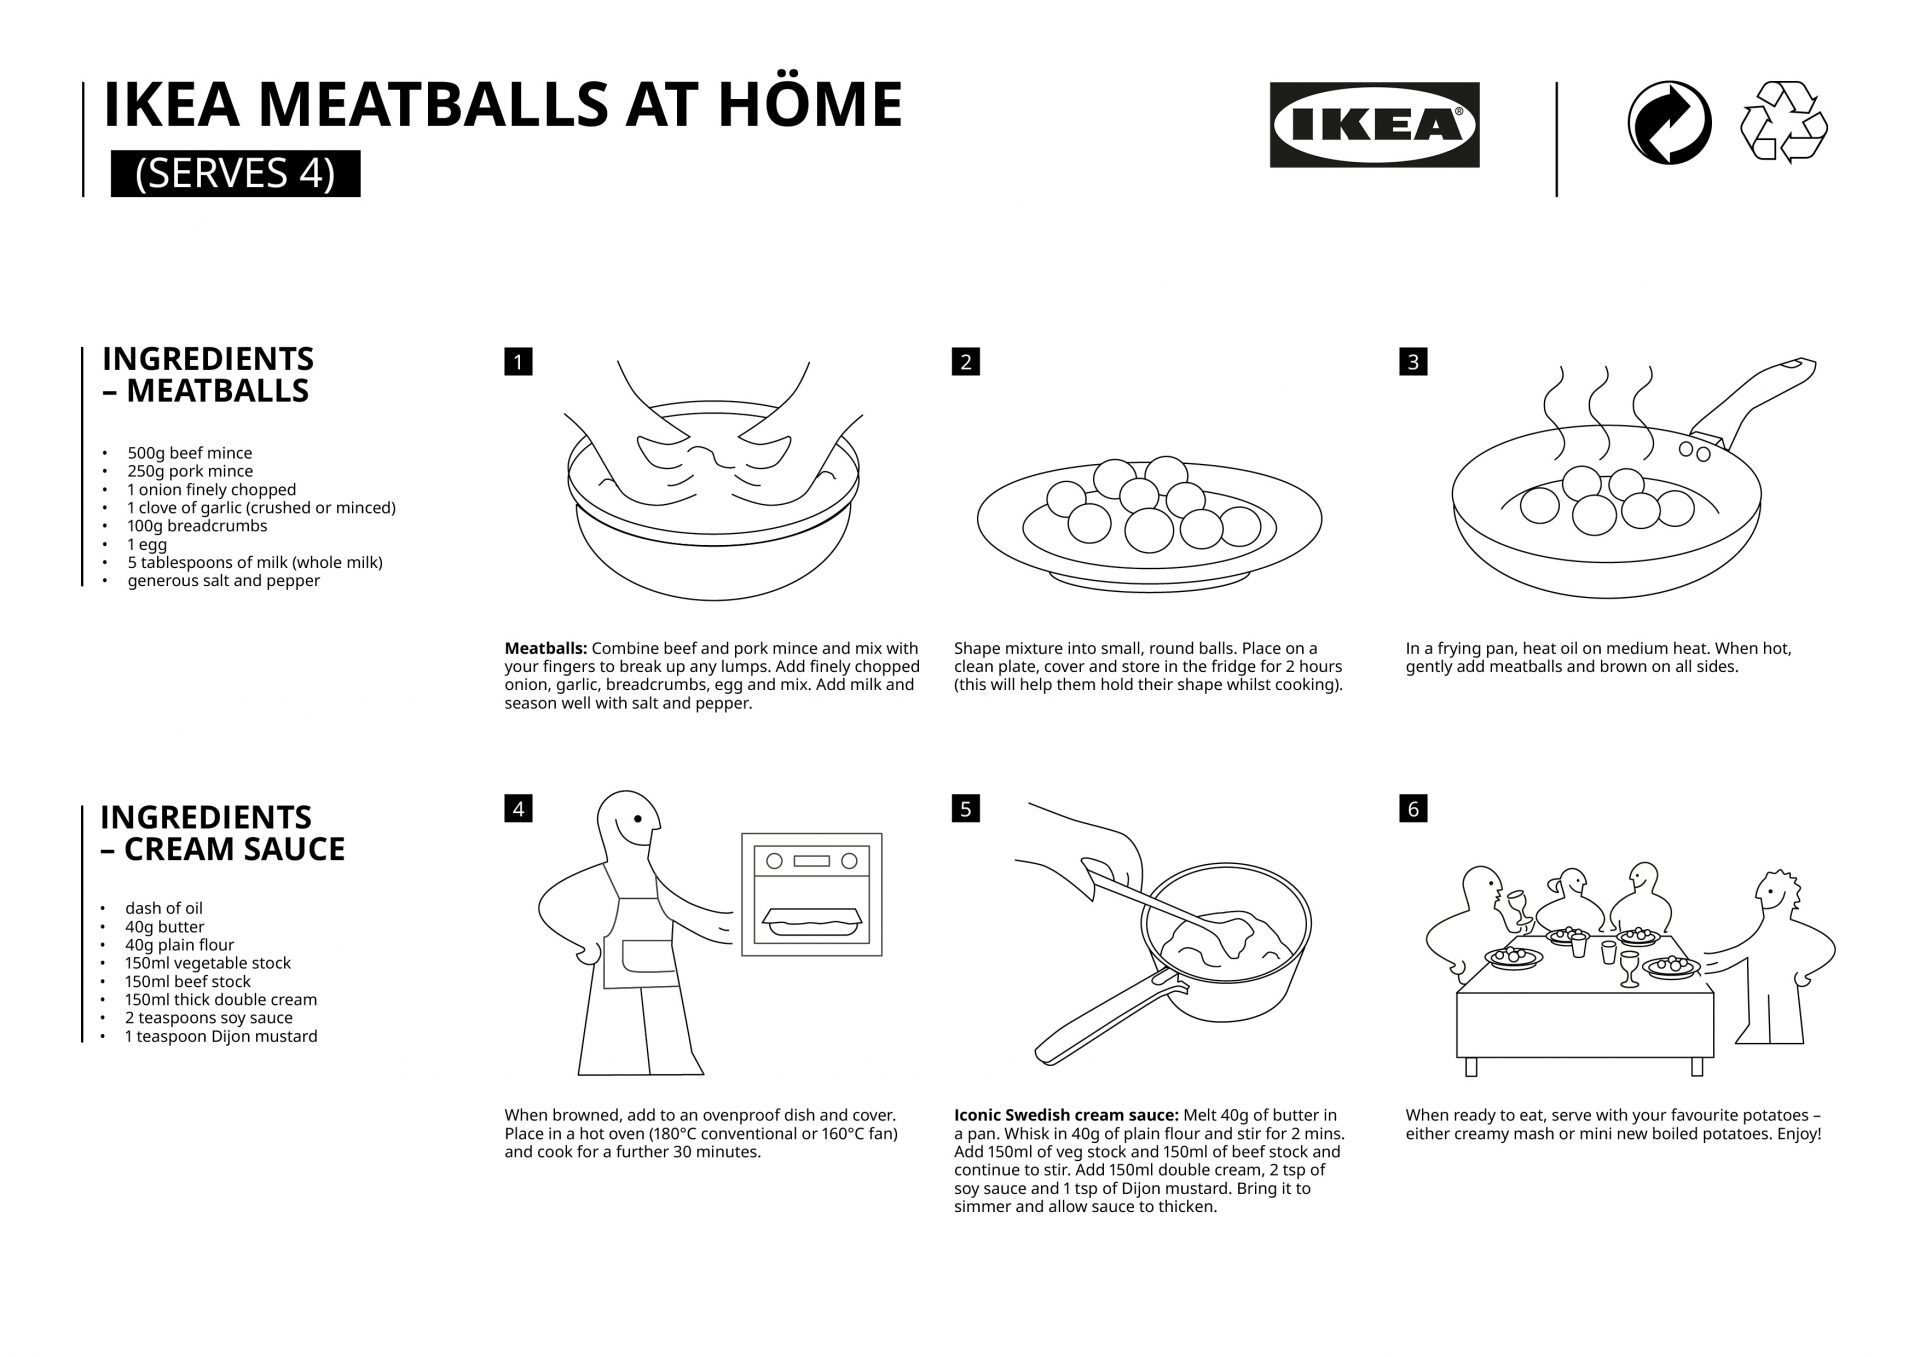 Ikea Just Released Its Famous Swedish Meatball Recipe Dished